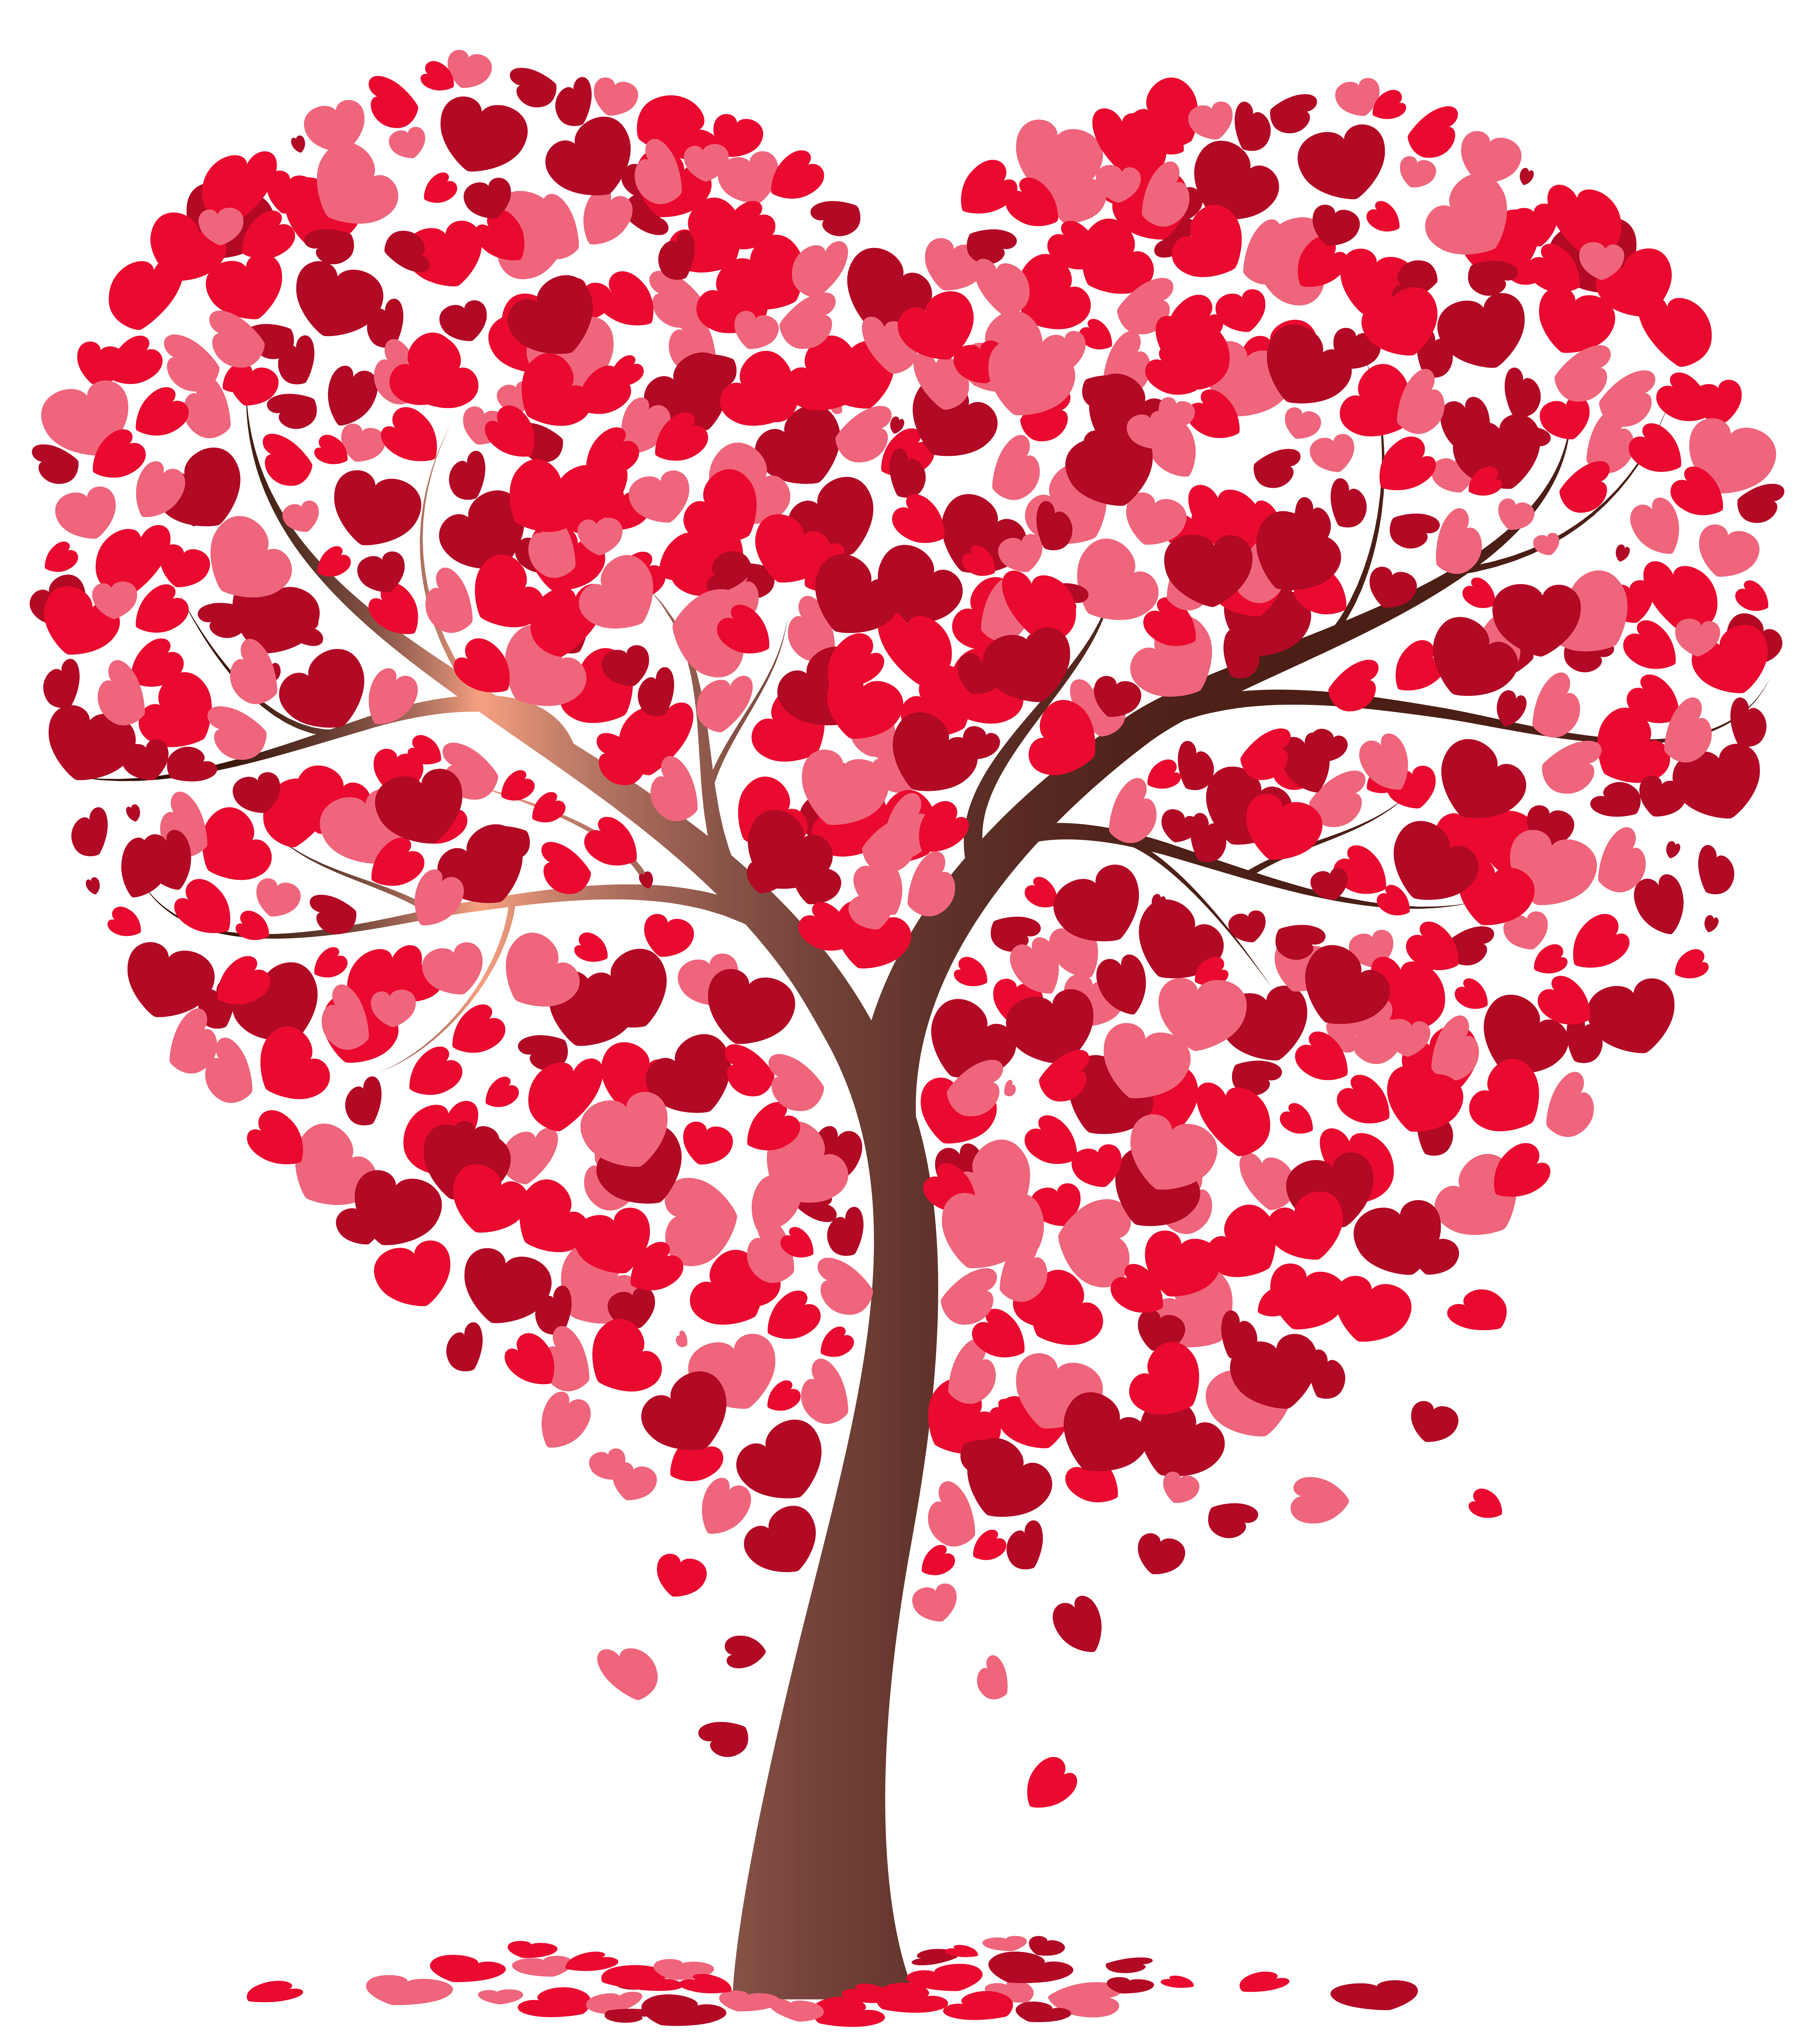 Heart Tree Transparent PNG Image.